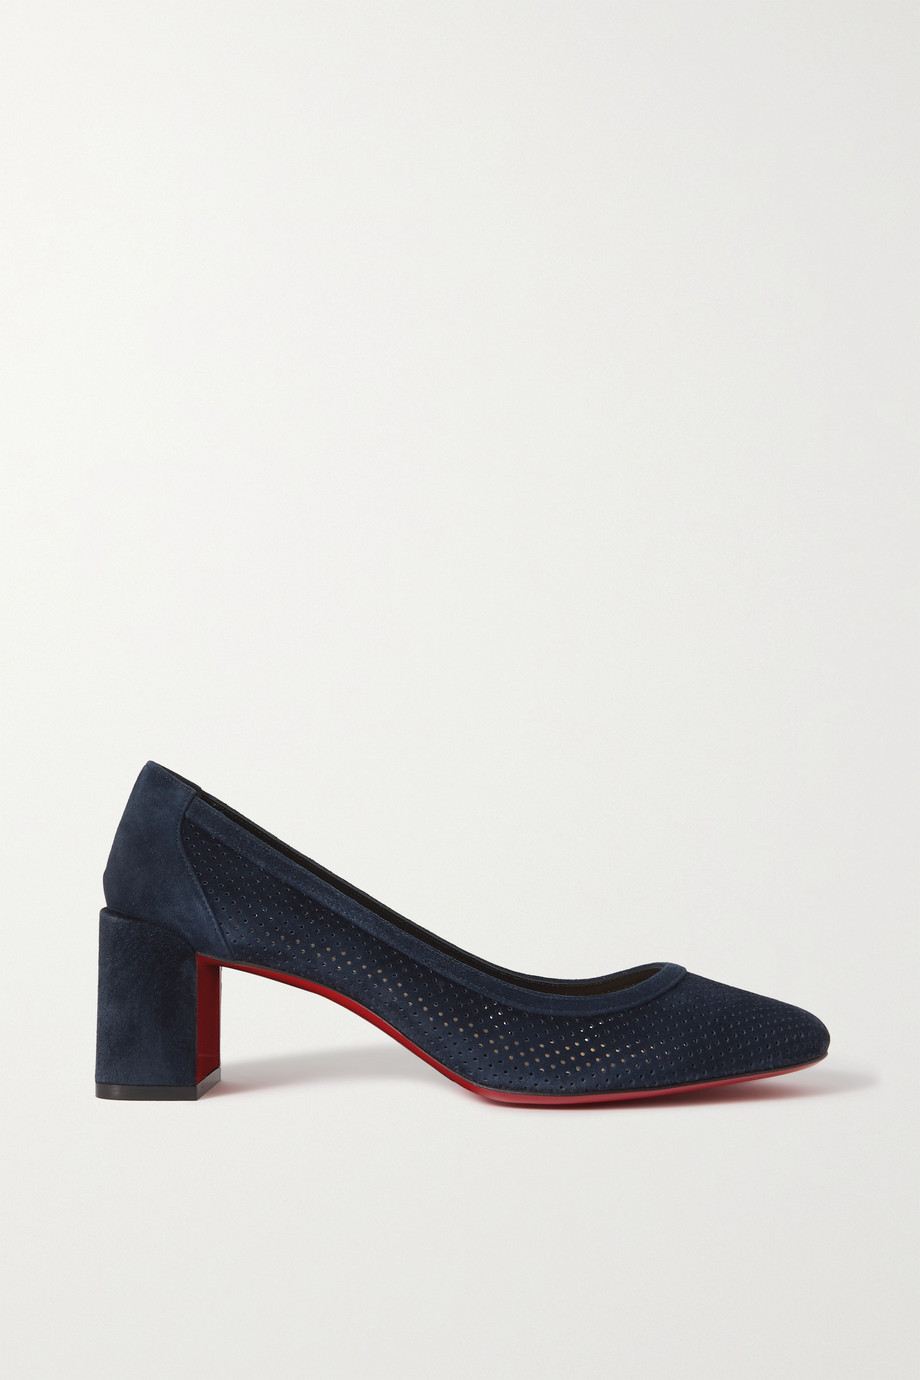 Christian Louboutin Incastrana 55 Pumps aus Veloursleder mit Perforationen